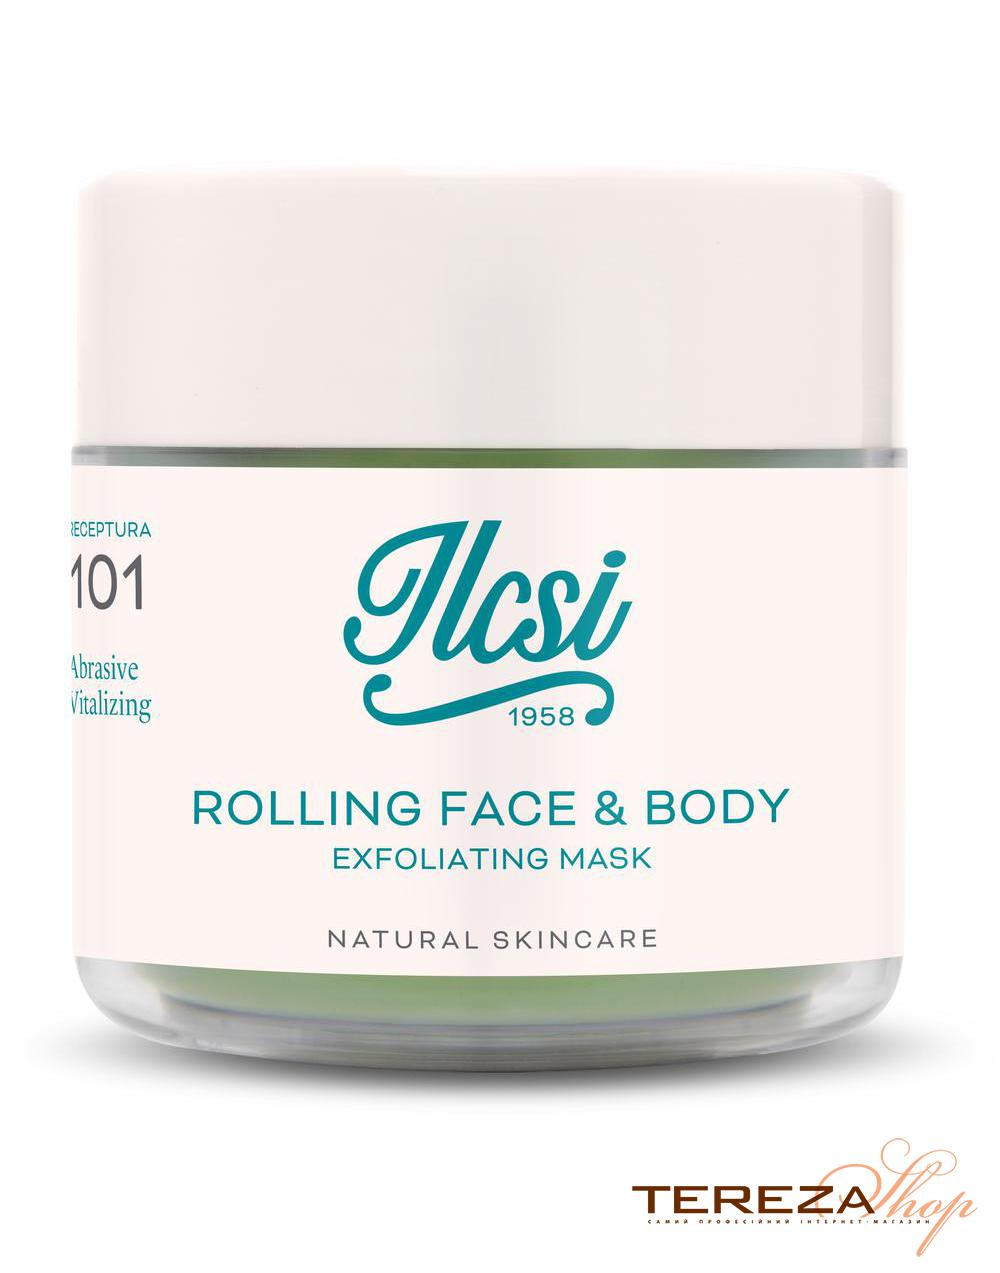 ROLLING FACE & BODY EXFOLIATING MASK 50 ml ILCSI | Tereza Shop